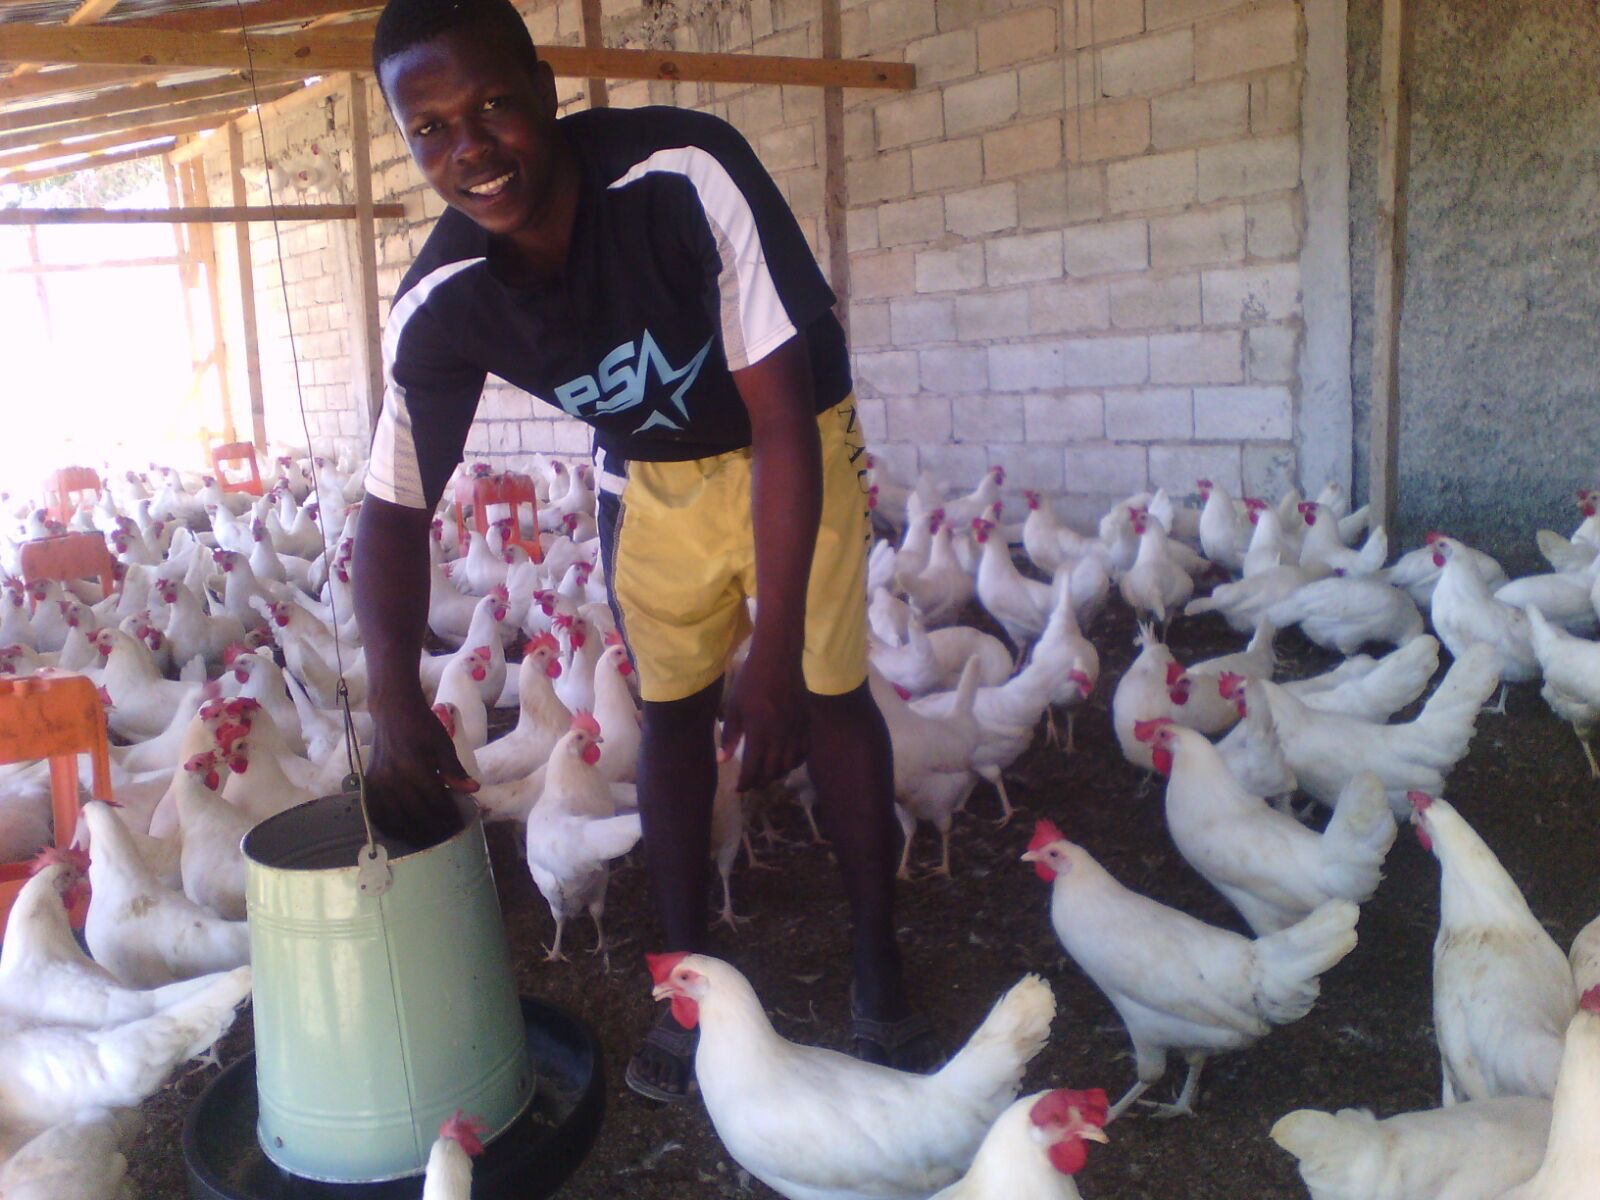 A project staff employee at one of our community projects in Jacmel, Haiti, that has over 1000 laying hens.